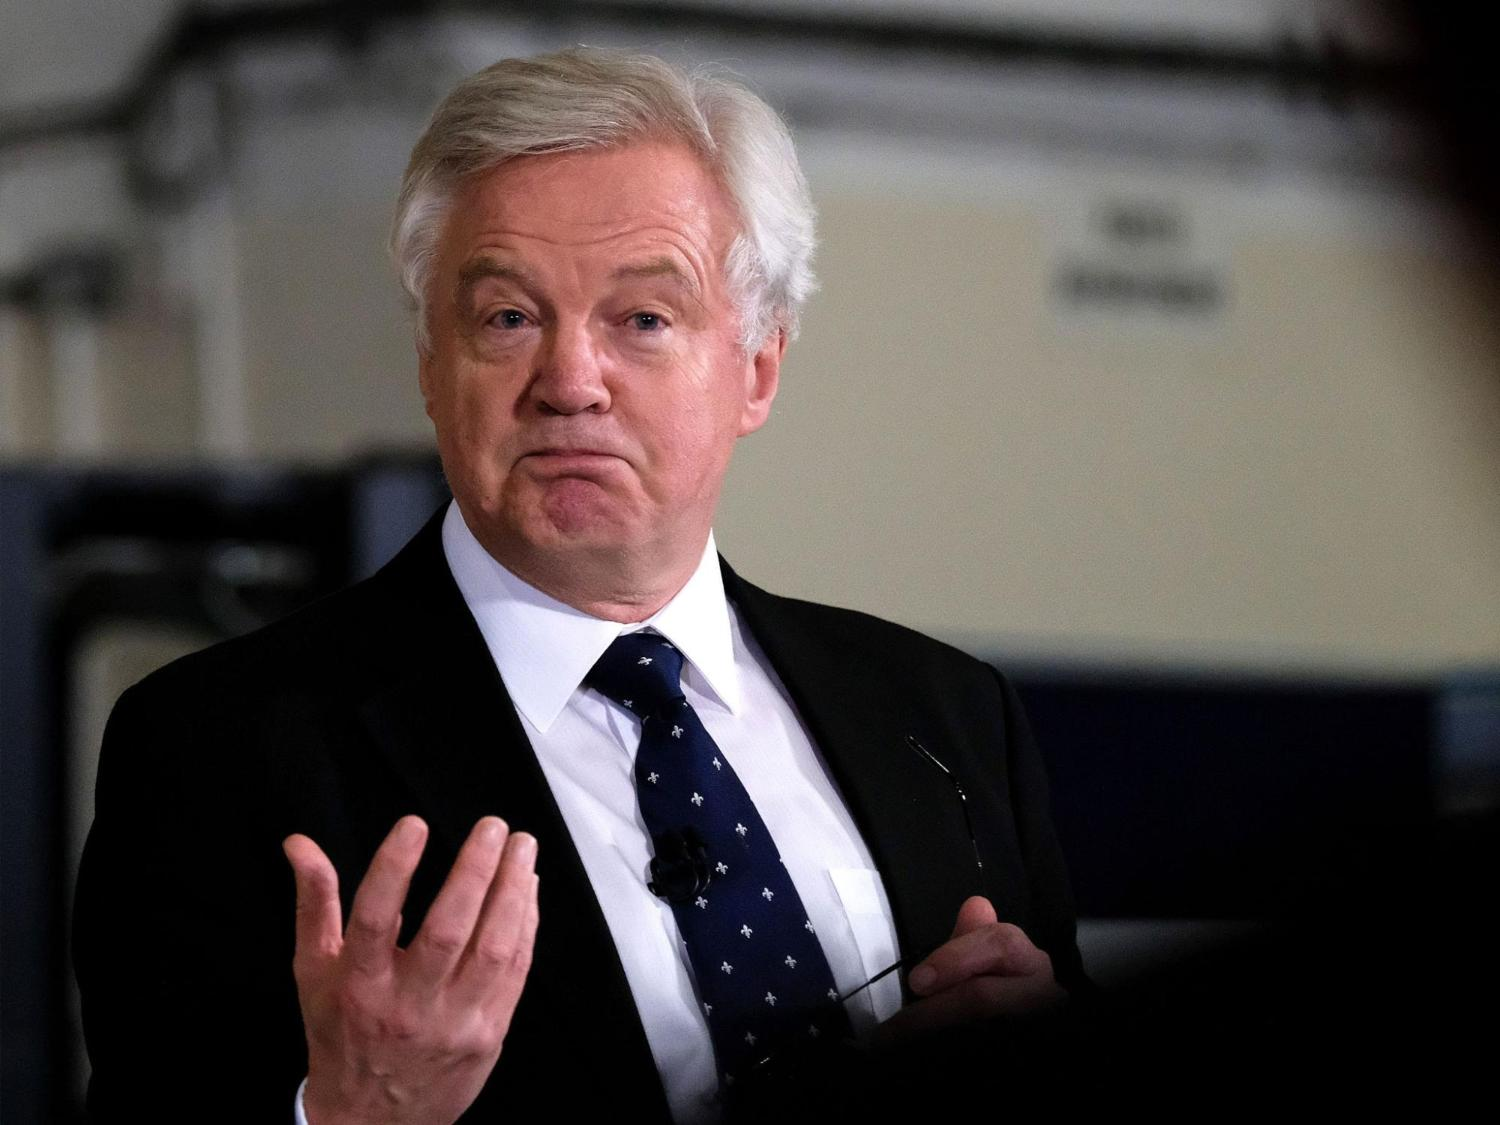 David Davis 'blocked' plans to give parliament more power over Brexit https://t.co/ro0Xz8Ocfa https://t.co/vYJWKDRG5m